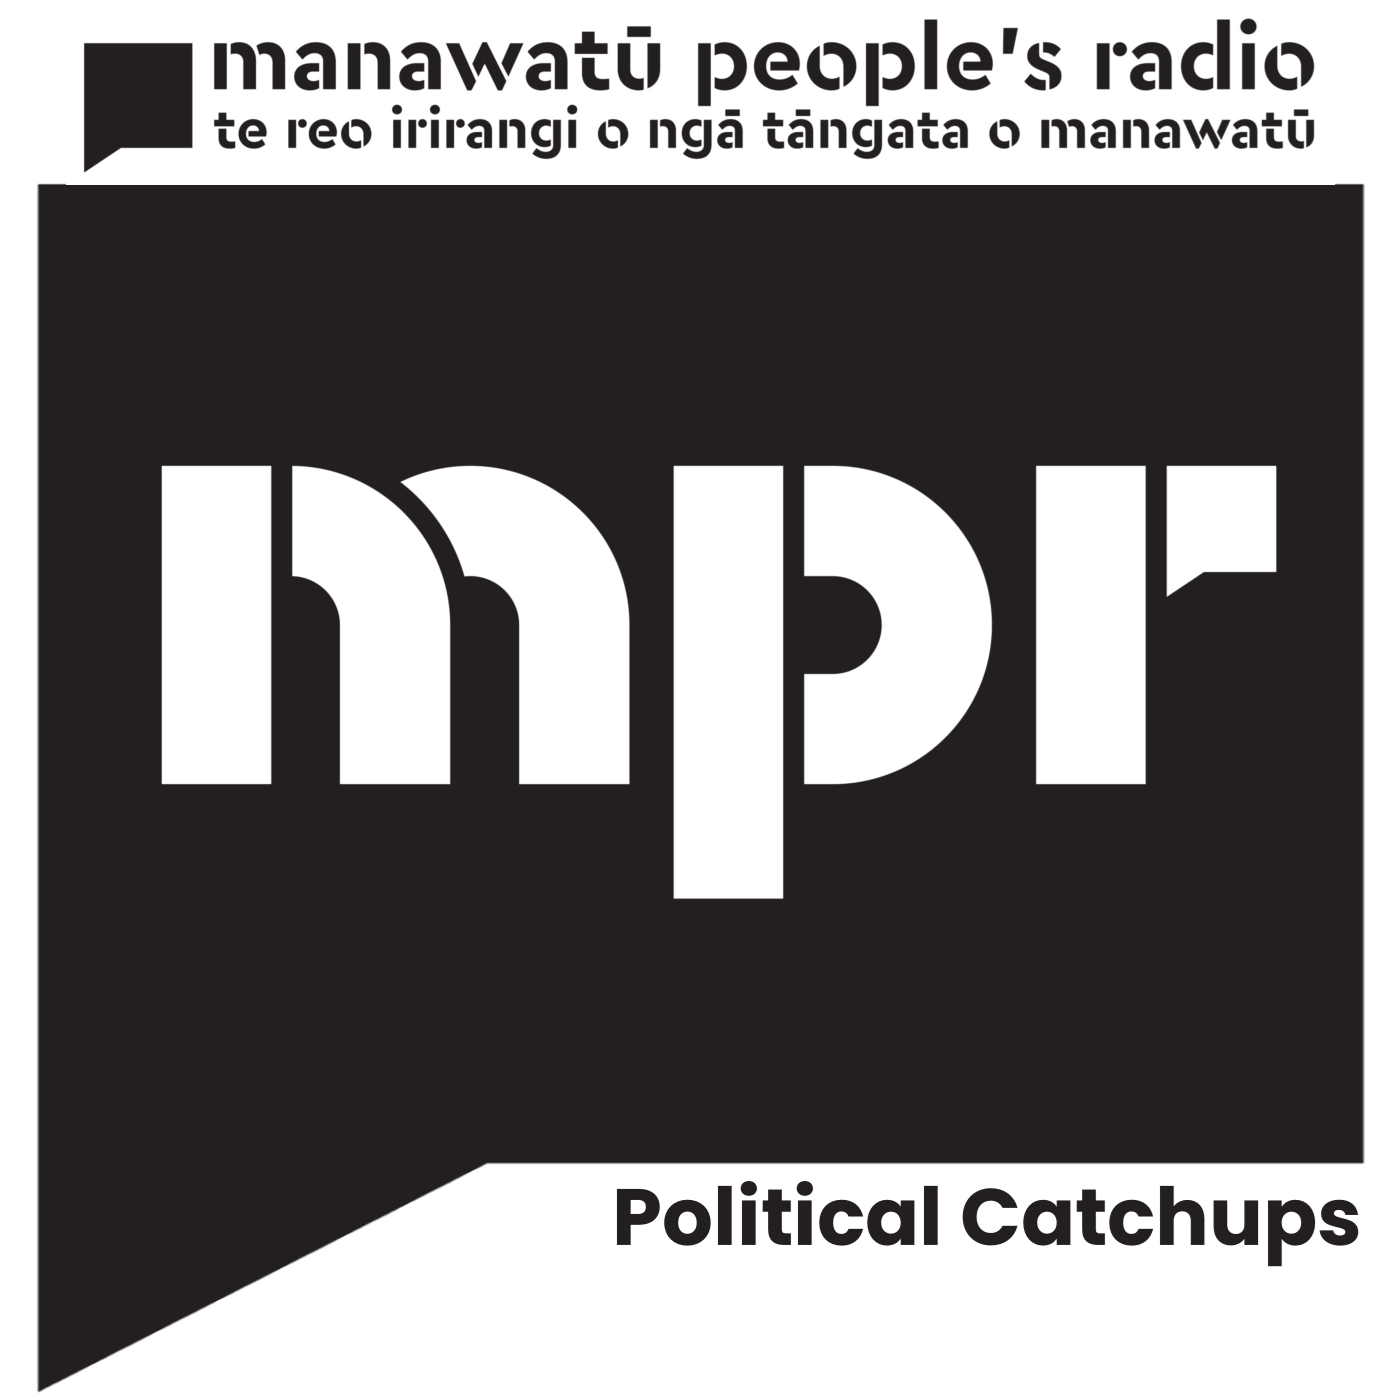 https://static.accessradio.org/StationFolder/manawatu/Images/MPR - PoliticalCatchups.png